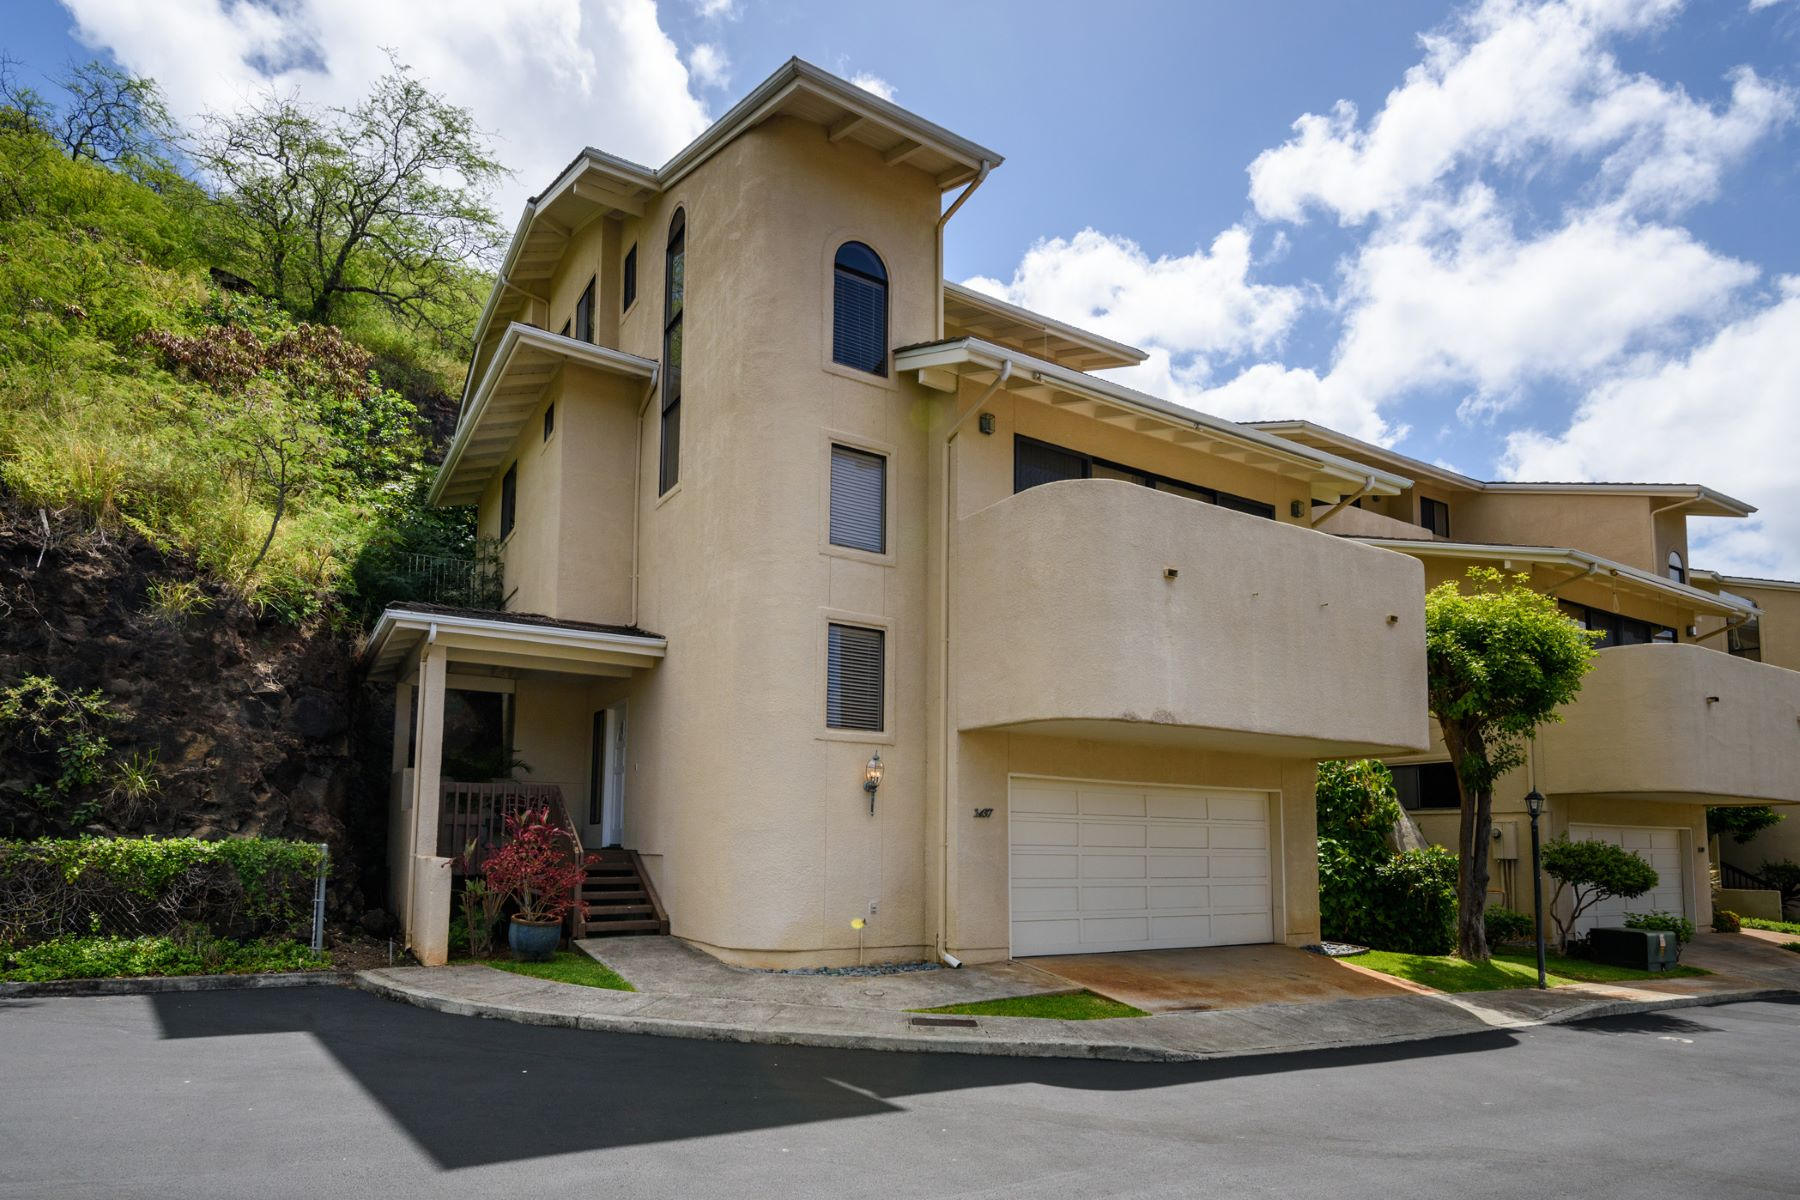 Single Family Home for Sale at Exclusive Kalani Iki Hideaway 1437 Hoakoa Place #10 Honolulu, Hawaii 96821 United States